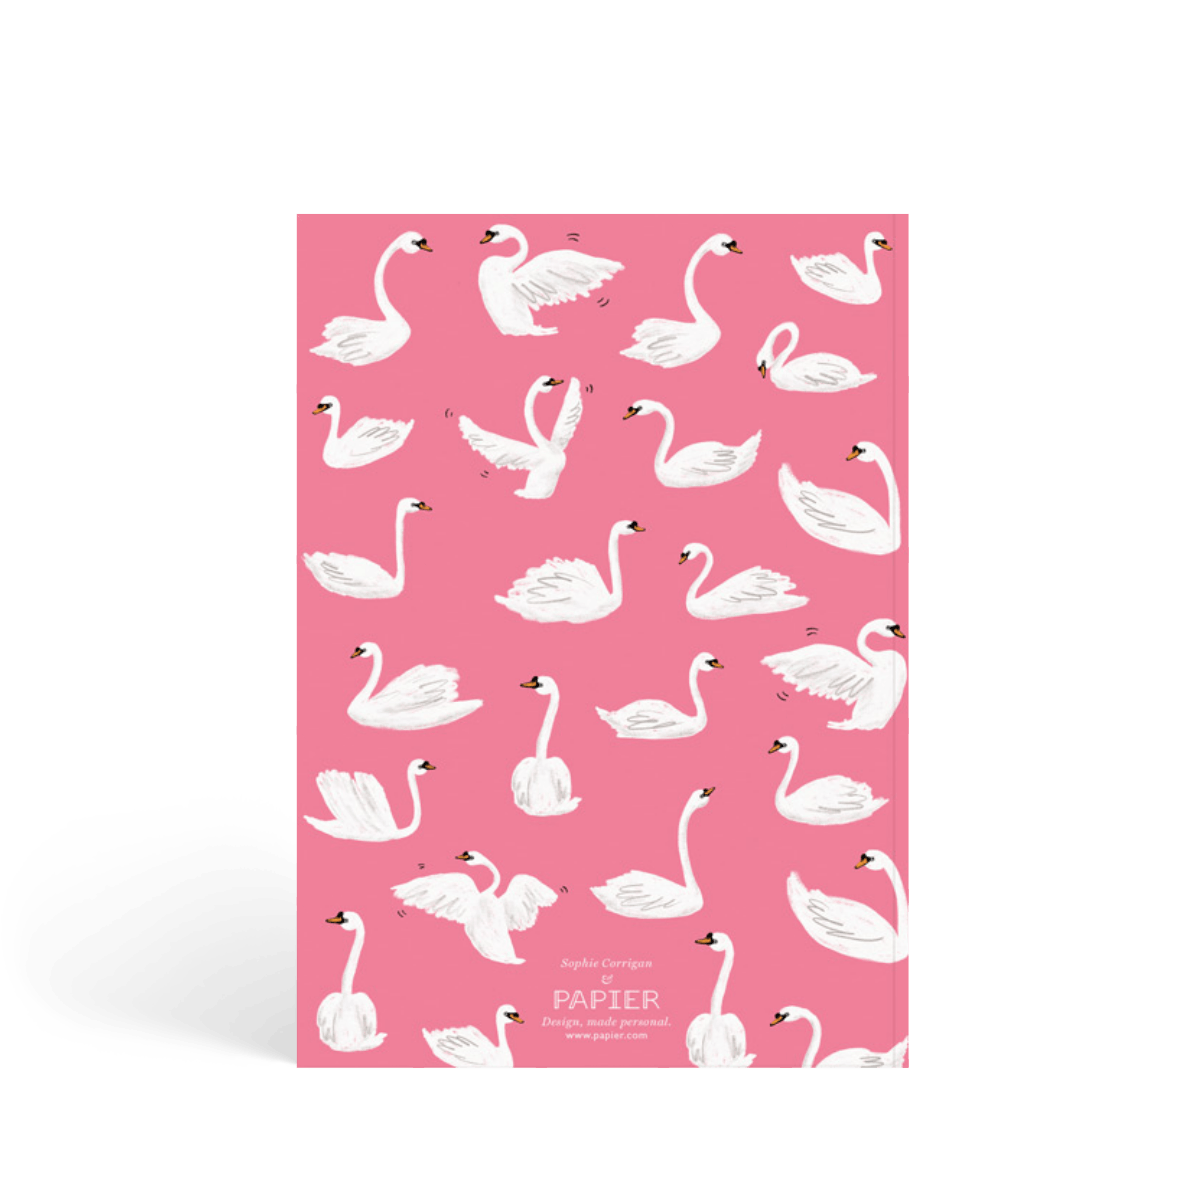 Https%3a%2f%2fwww.papier.com%2fproduct image%2f37708%2f5%2fpink swans 9505 back 1527696259.png?ixlib=rb 1.1